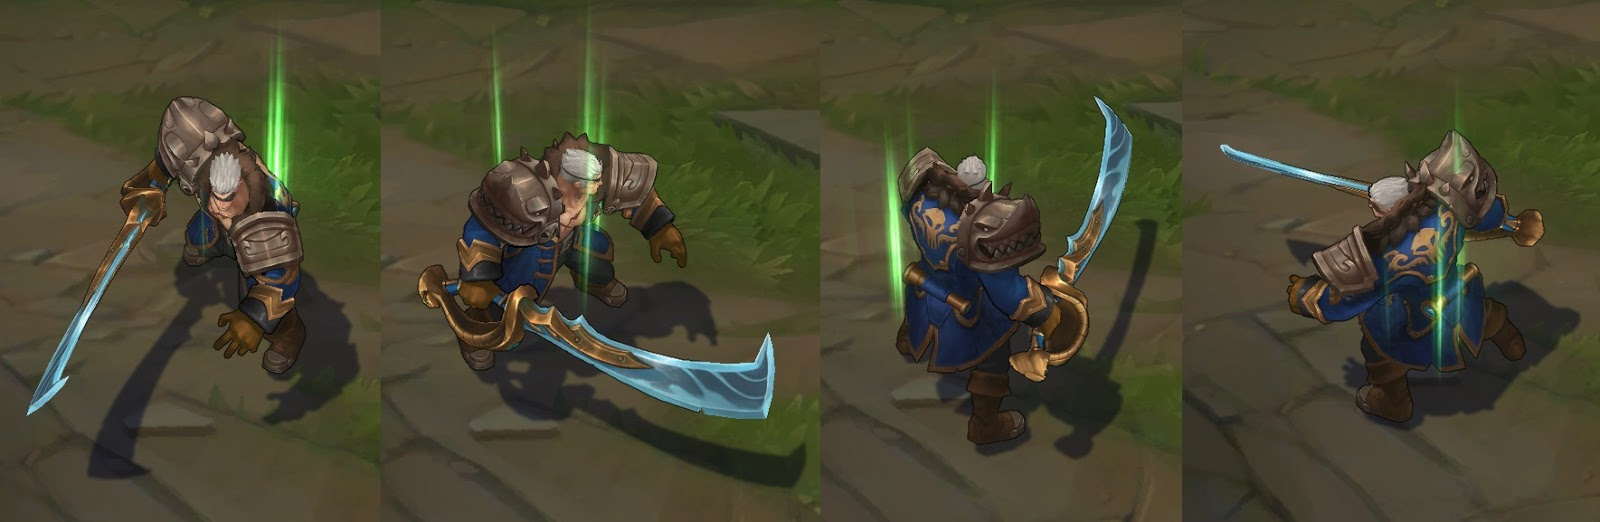 Rogue Admiral Garen Lol Skin Spotlight Now For Sale